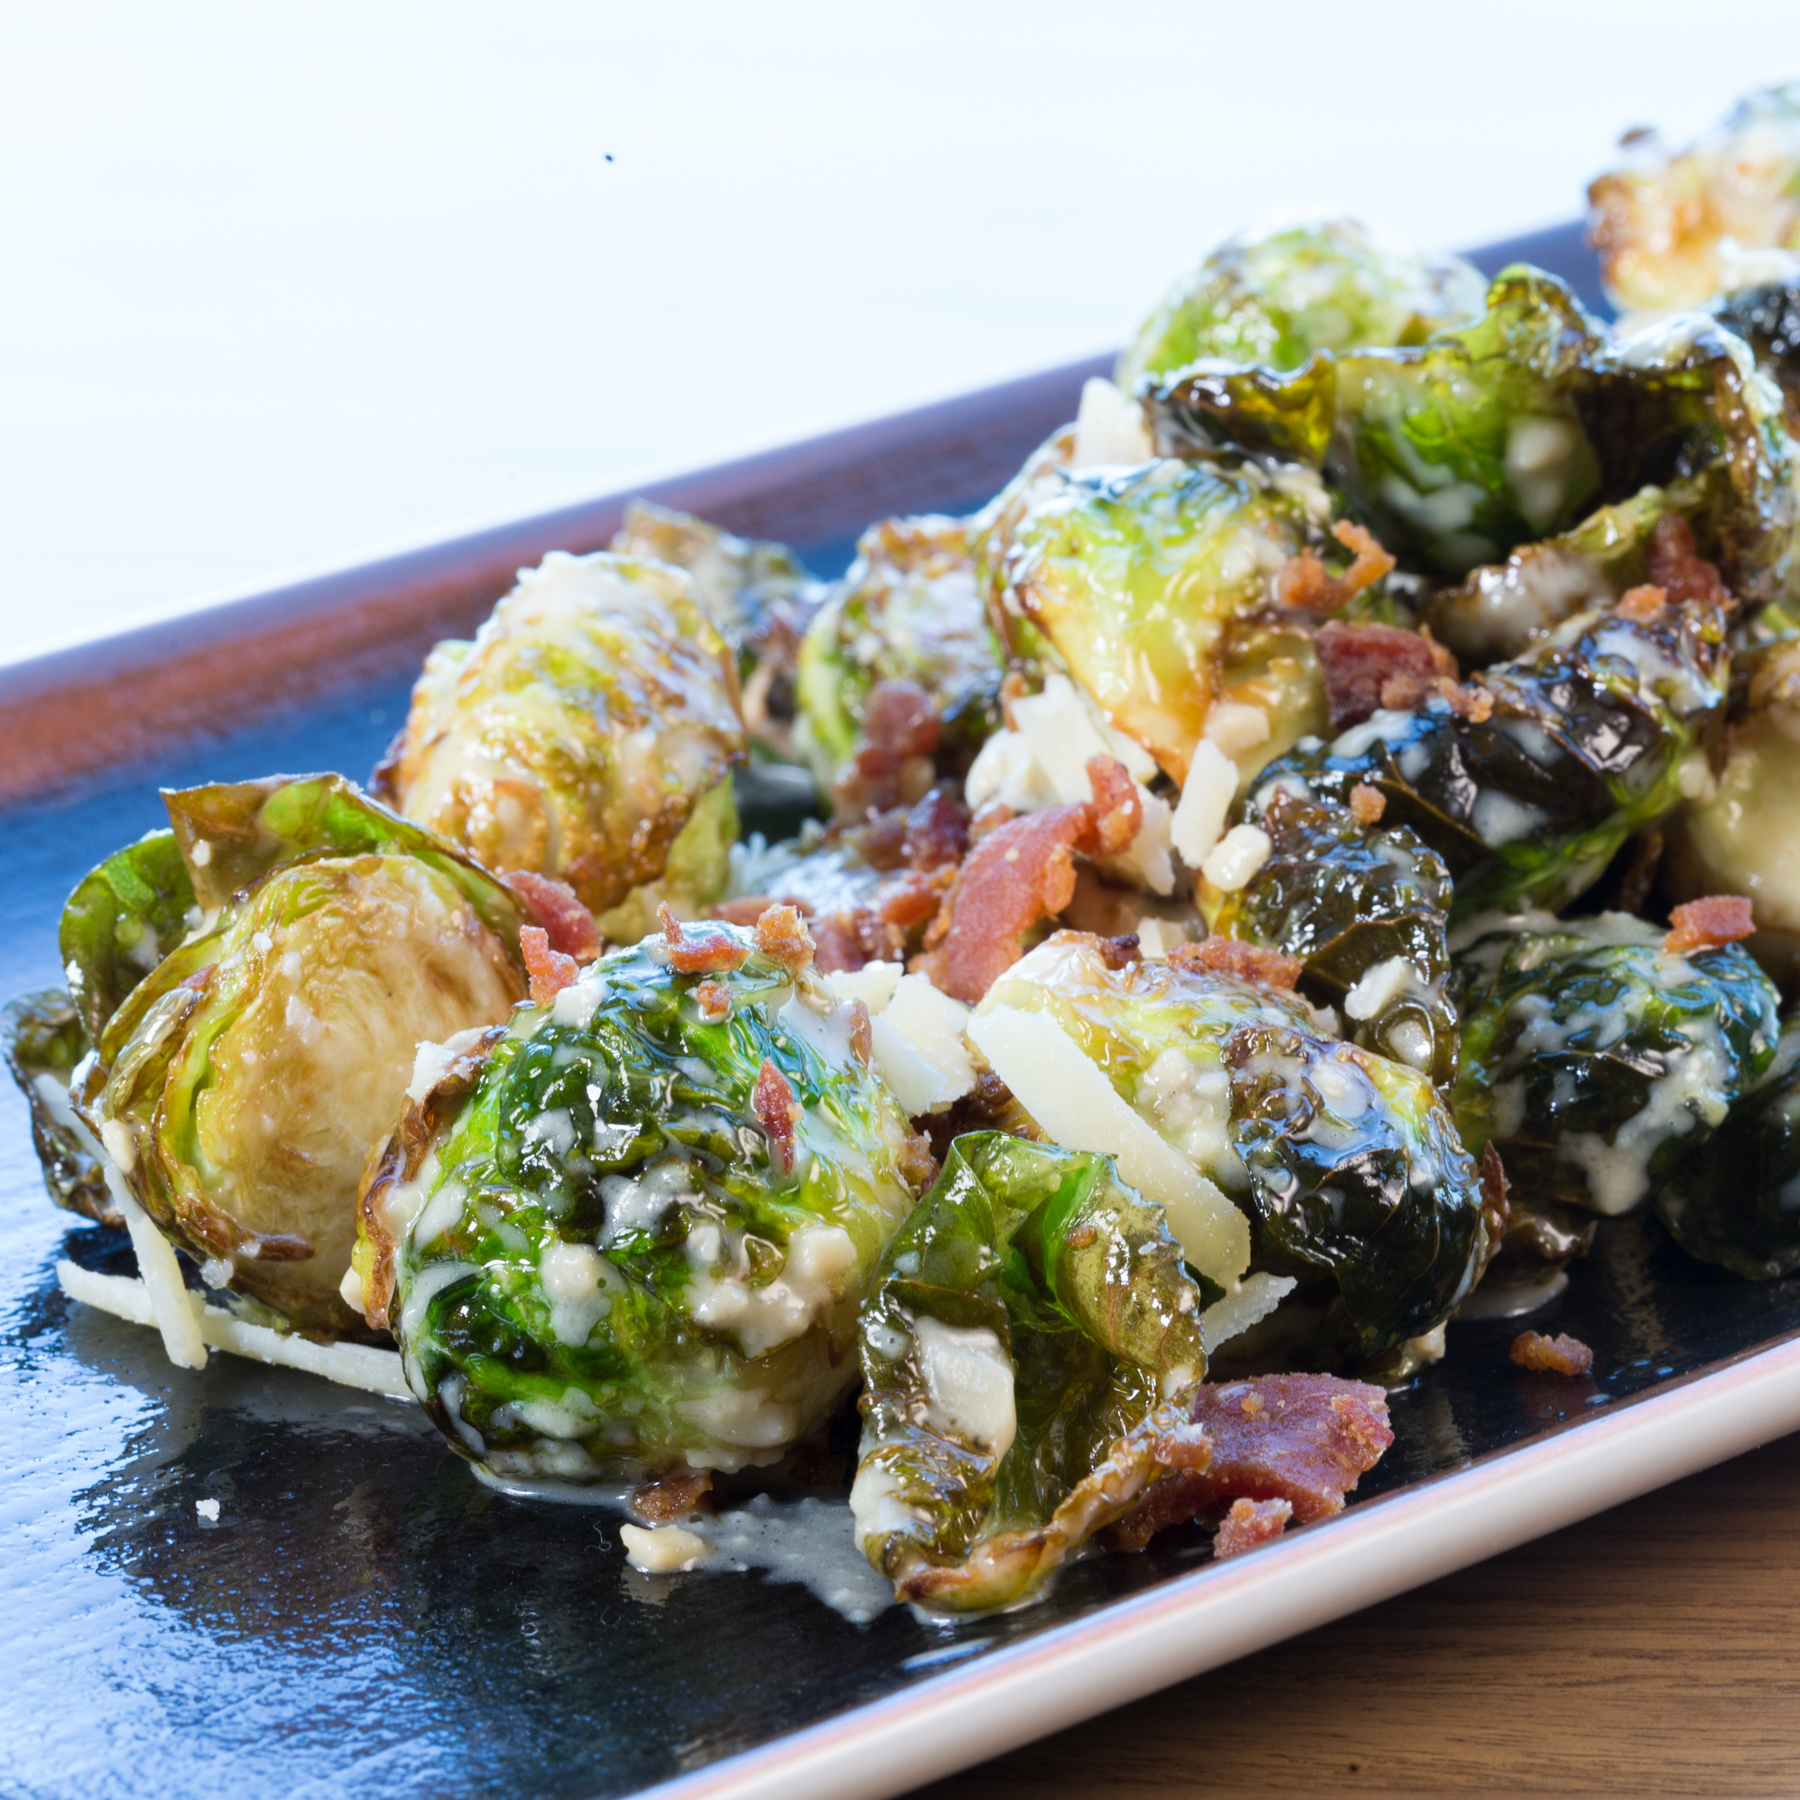 Roy's Hawaii_Bacon Ceasar Brussell Sprouts | Parmesan__pc Craig Bixel_10-2017.jpg